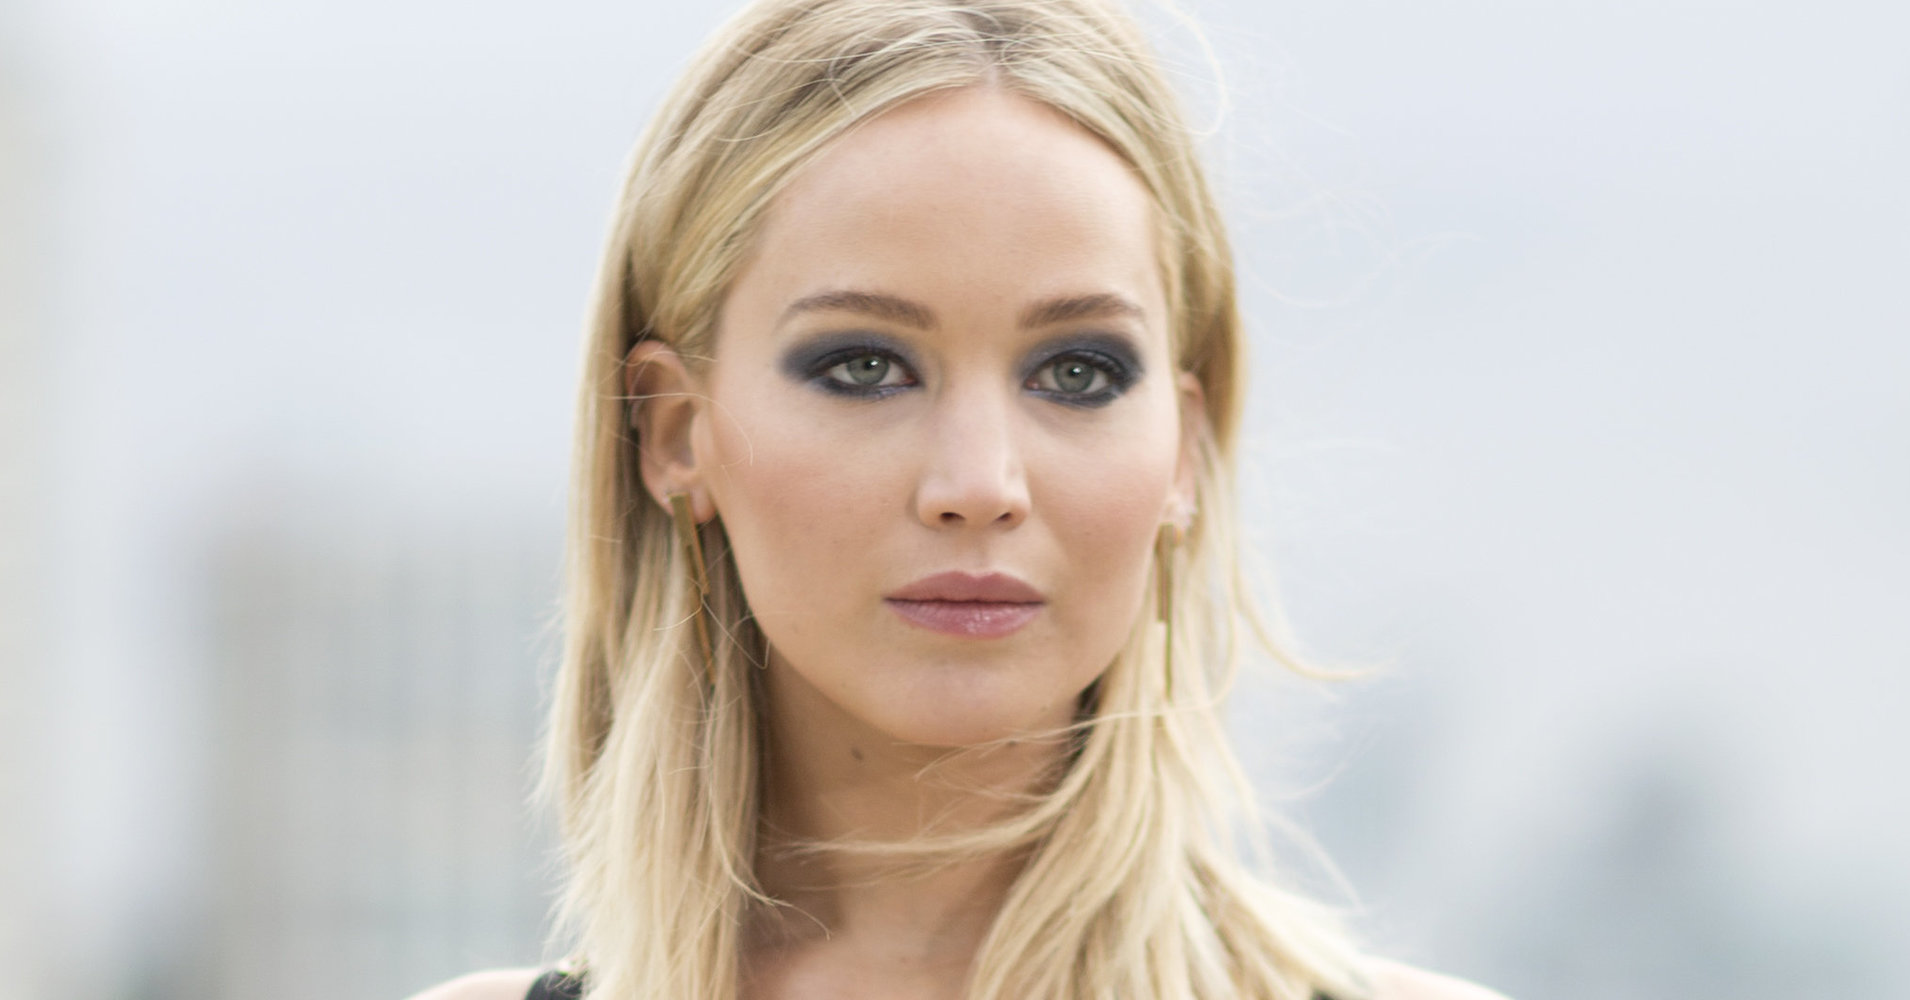 Jennifer Lawrence Defends Nude Scene After Photo Hack: 'One Is My Choice'